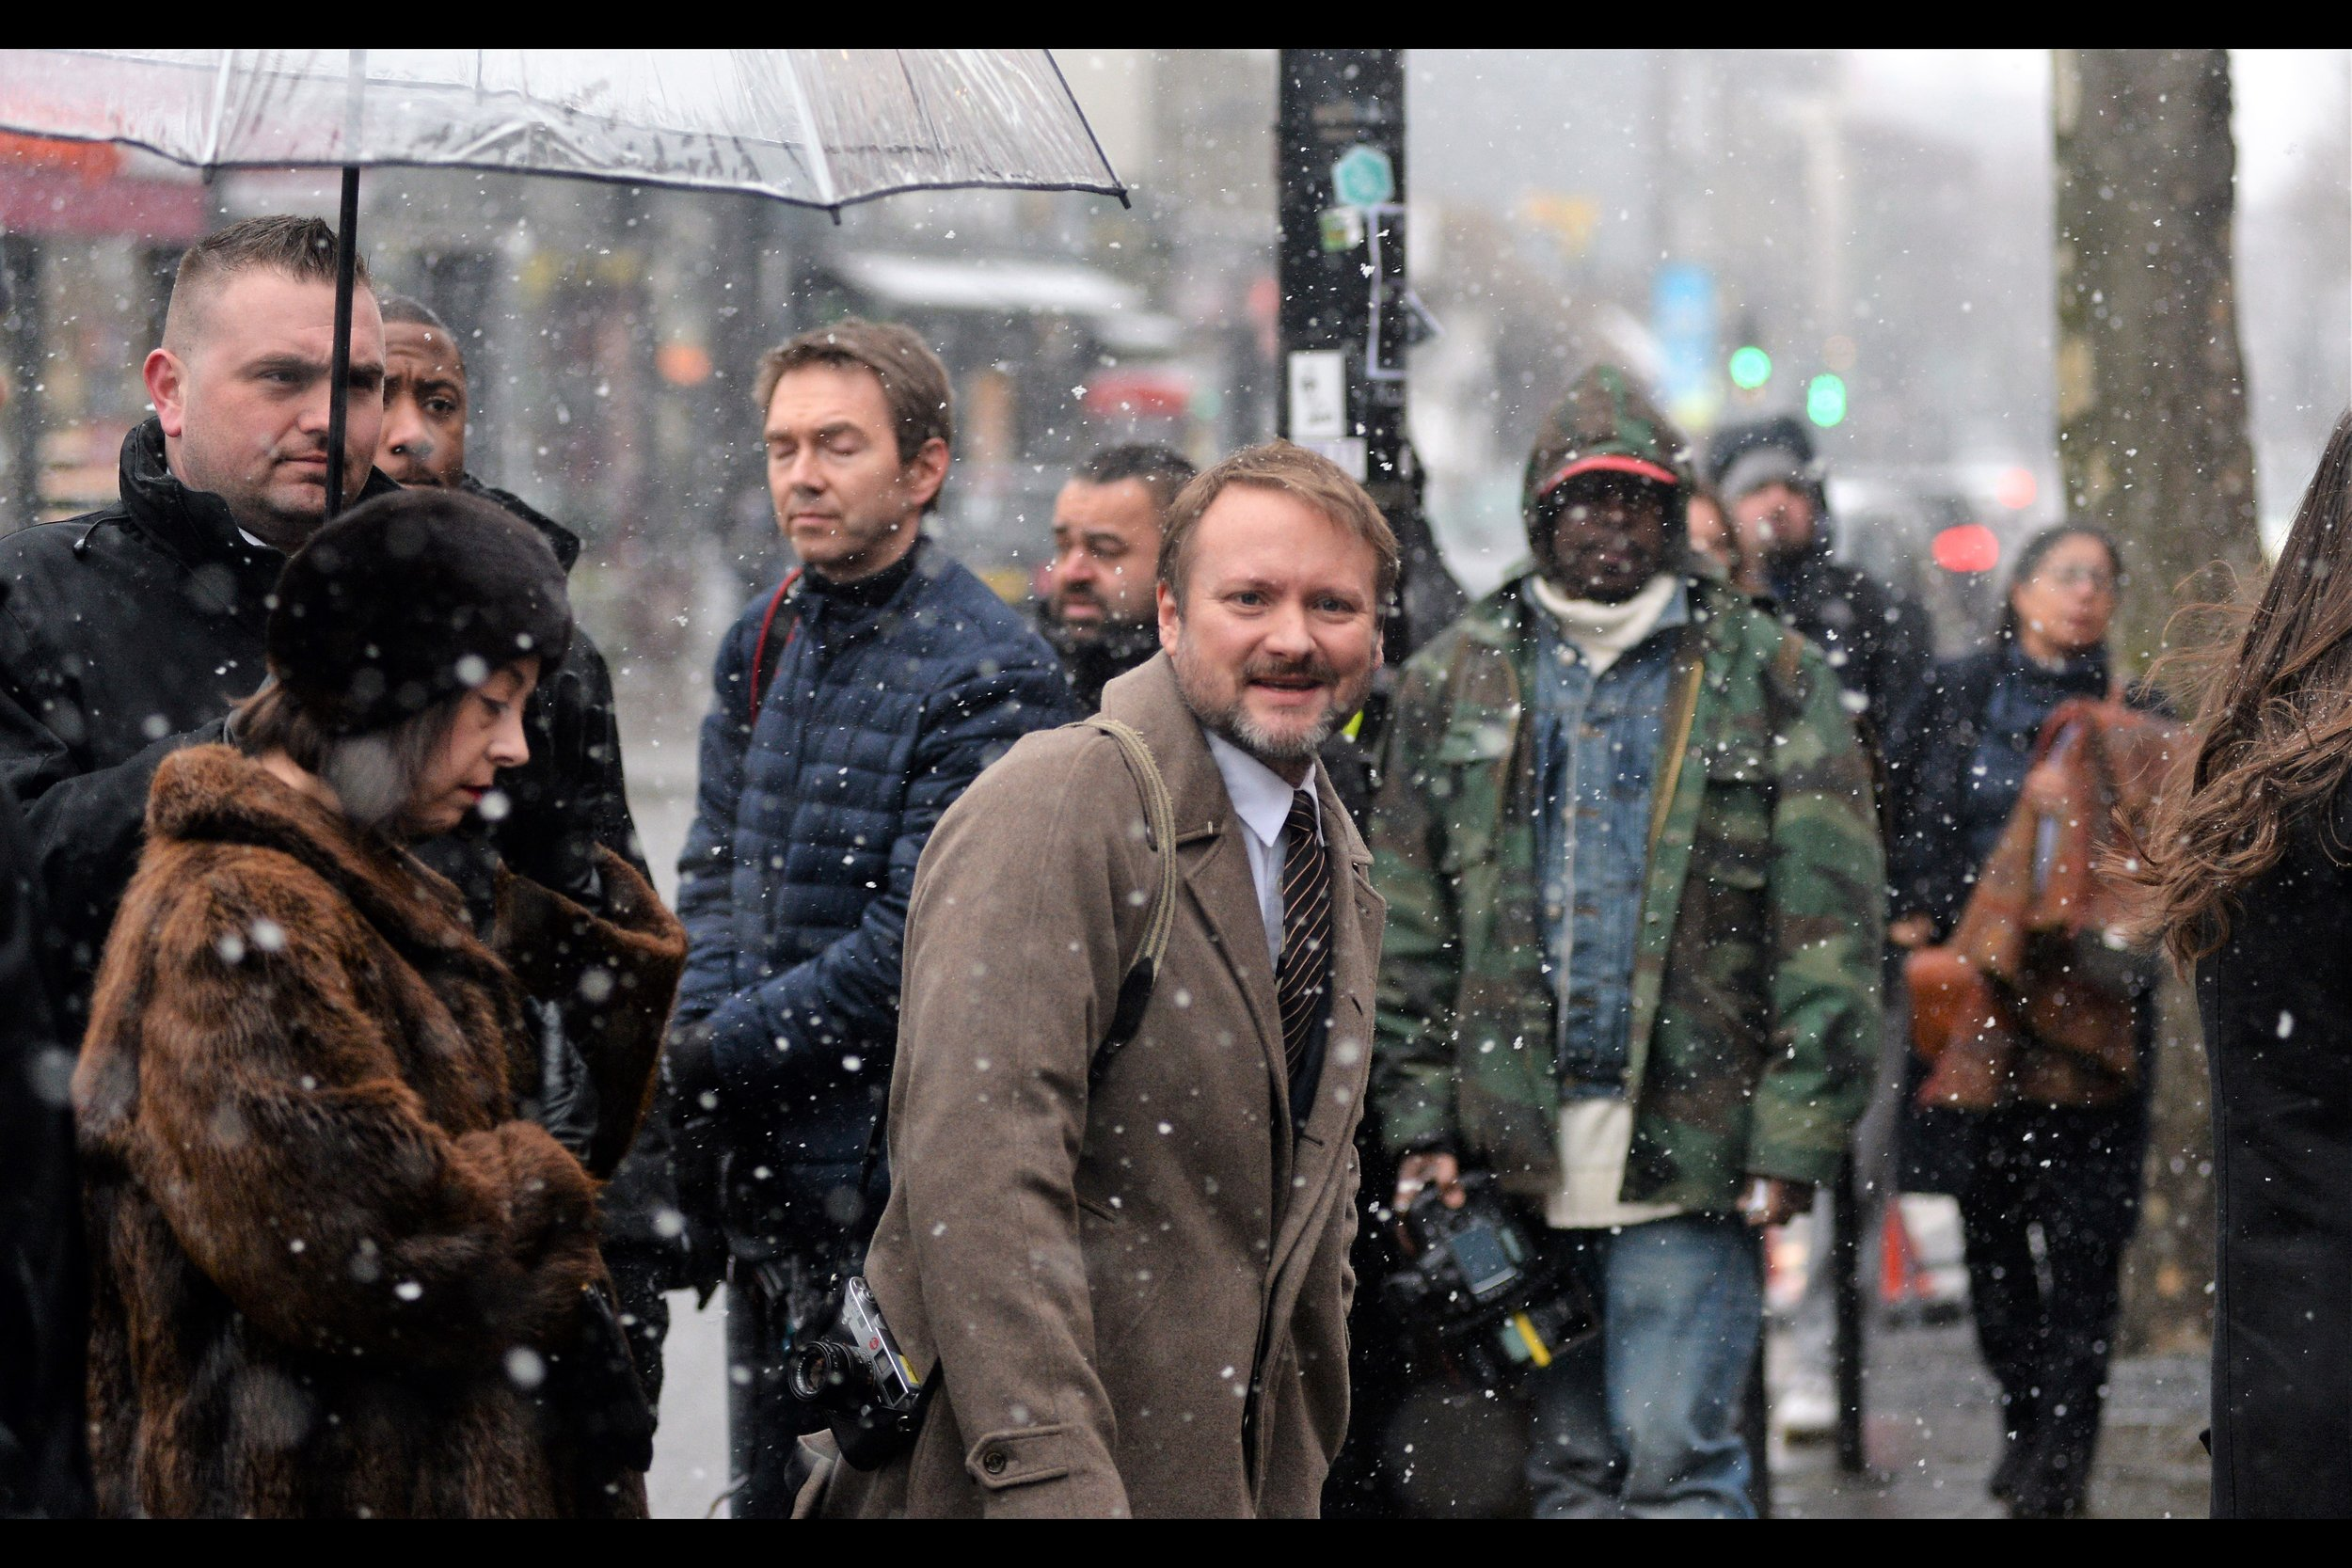 Rian Johnson directed '   Star Wars : The Last Jedi   ' - the movie over 90% of critics loved but over 50% of fans on Rottentomatoes did not. Fortunately, critics pay to see movies.... don't they? Still, he's a nice guy and I really like this photo.